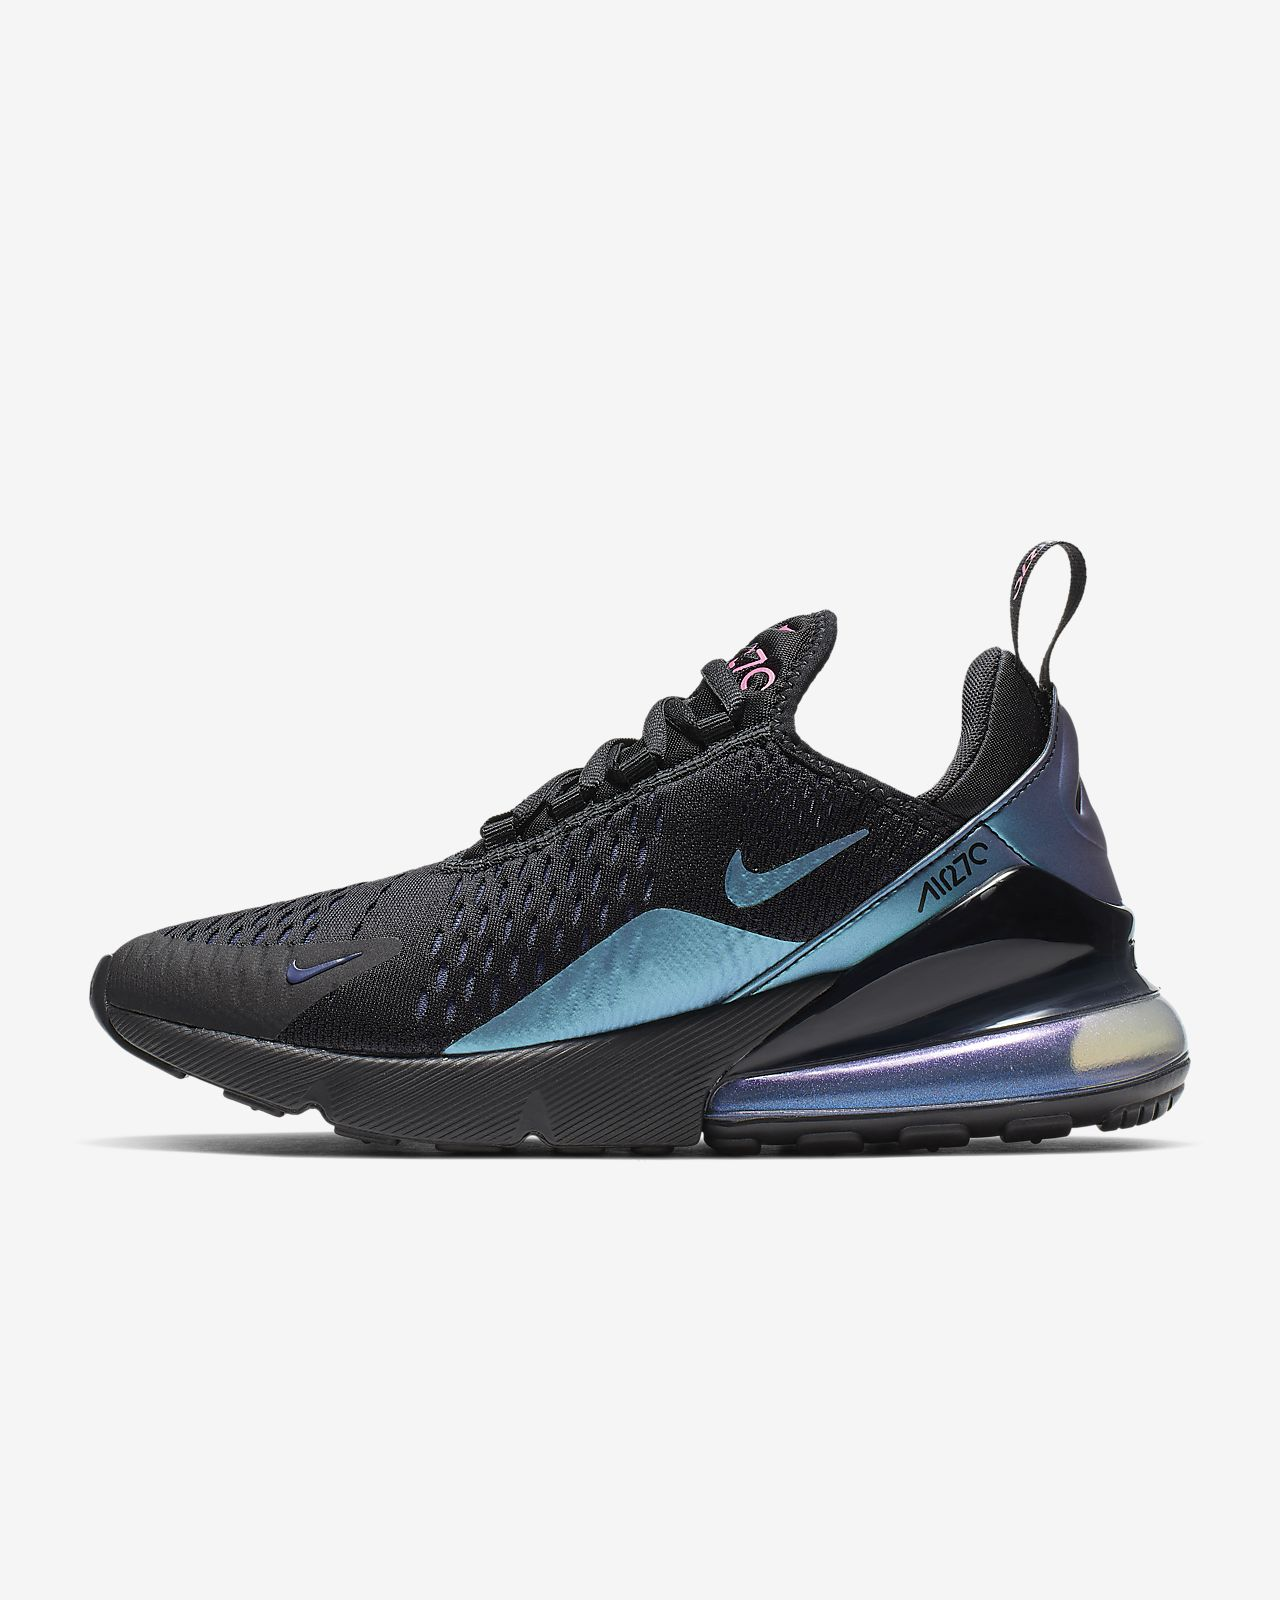 ac61bc0fac00d Nike Air Max 270 Women s Shoe. Nike.com GB